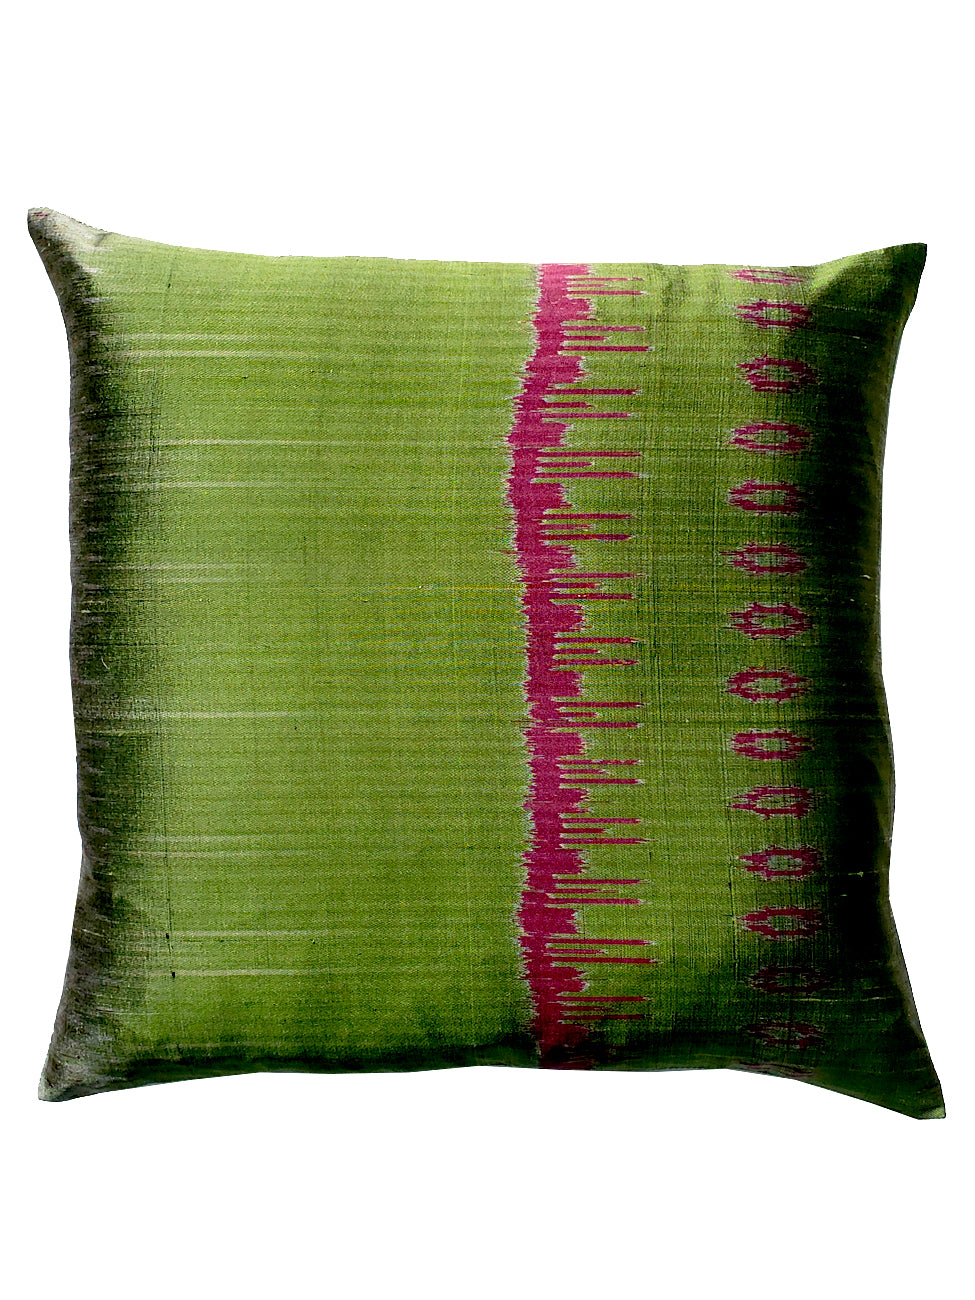 Thai Silk Modern Ikat Pillow Green Eggplant